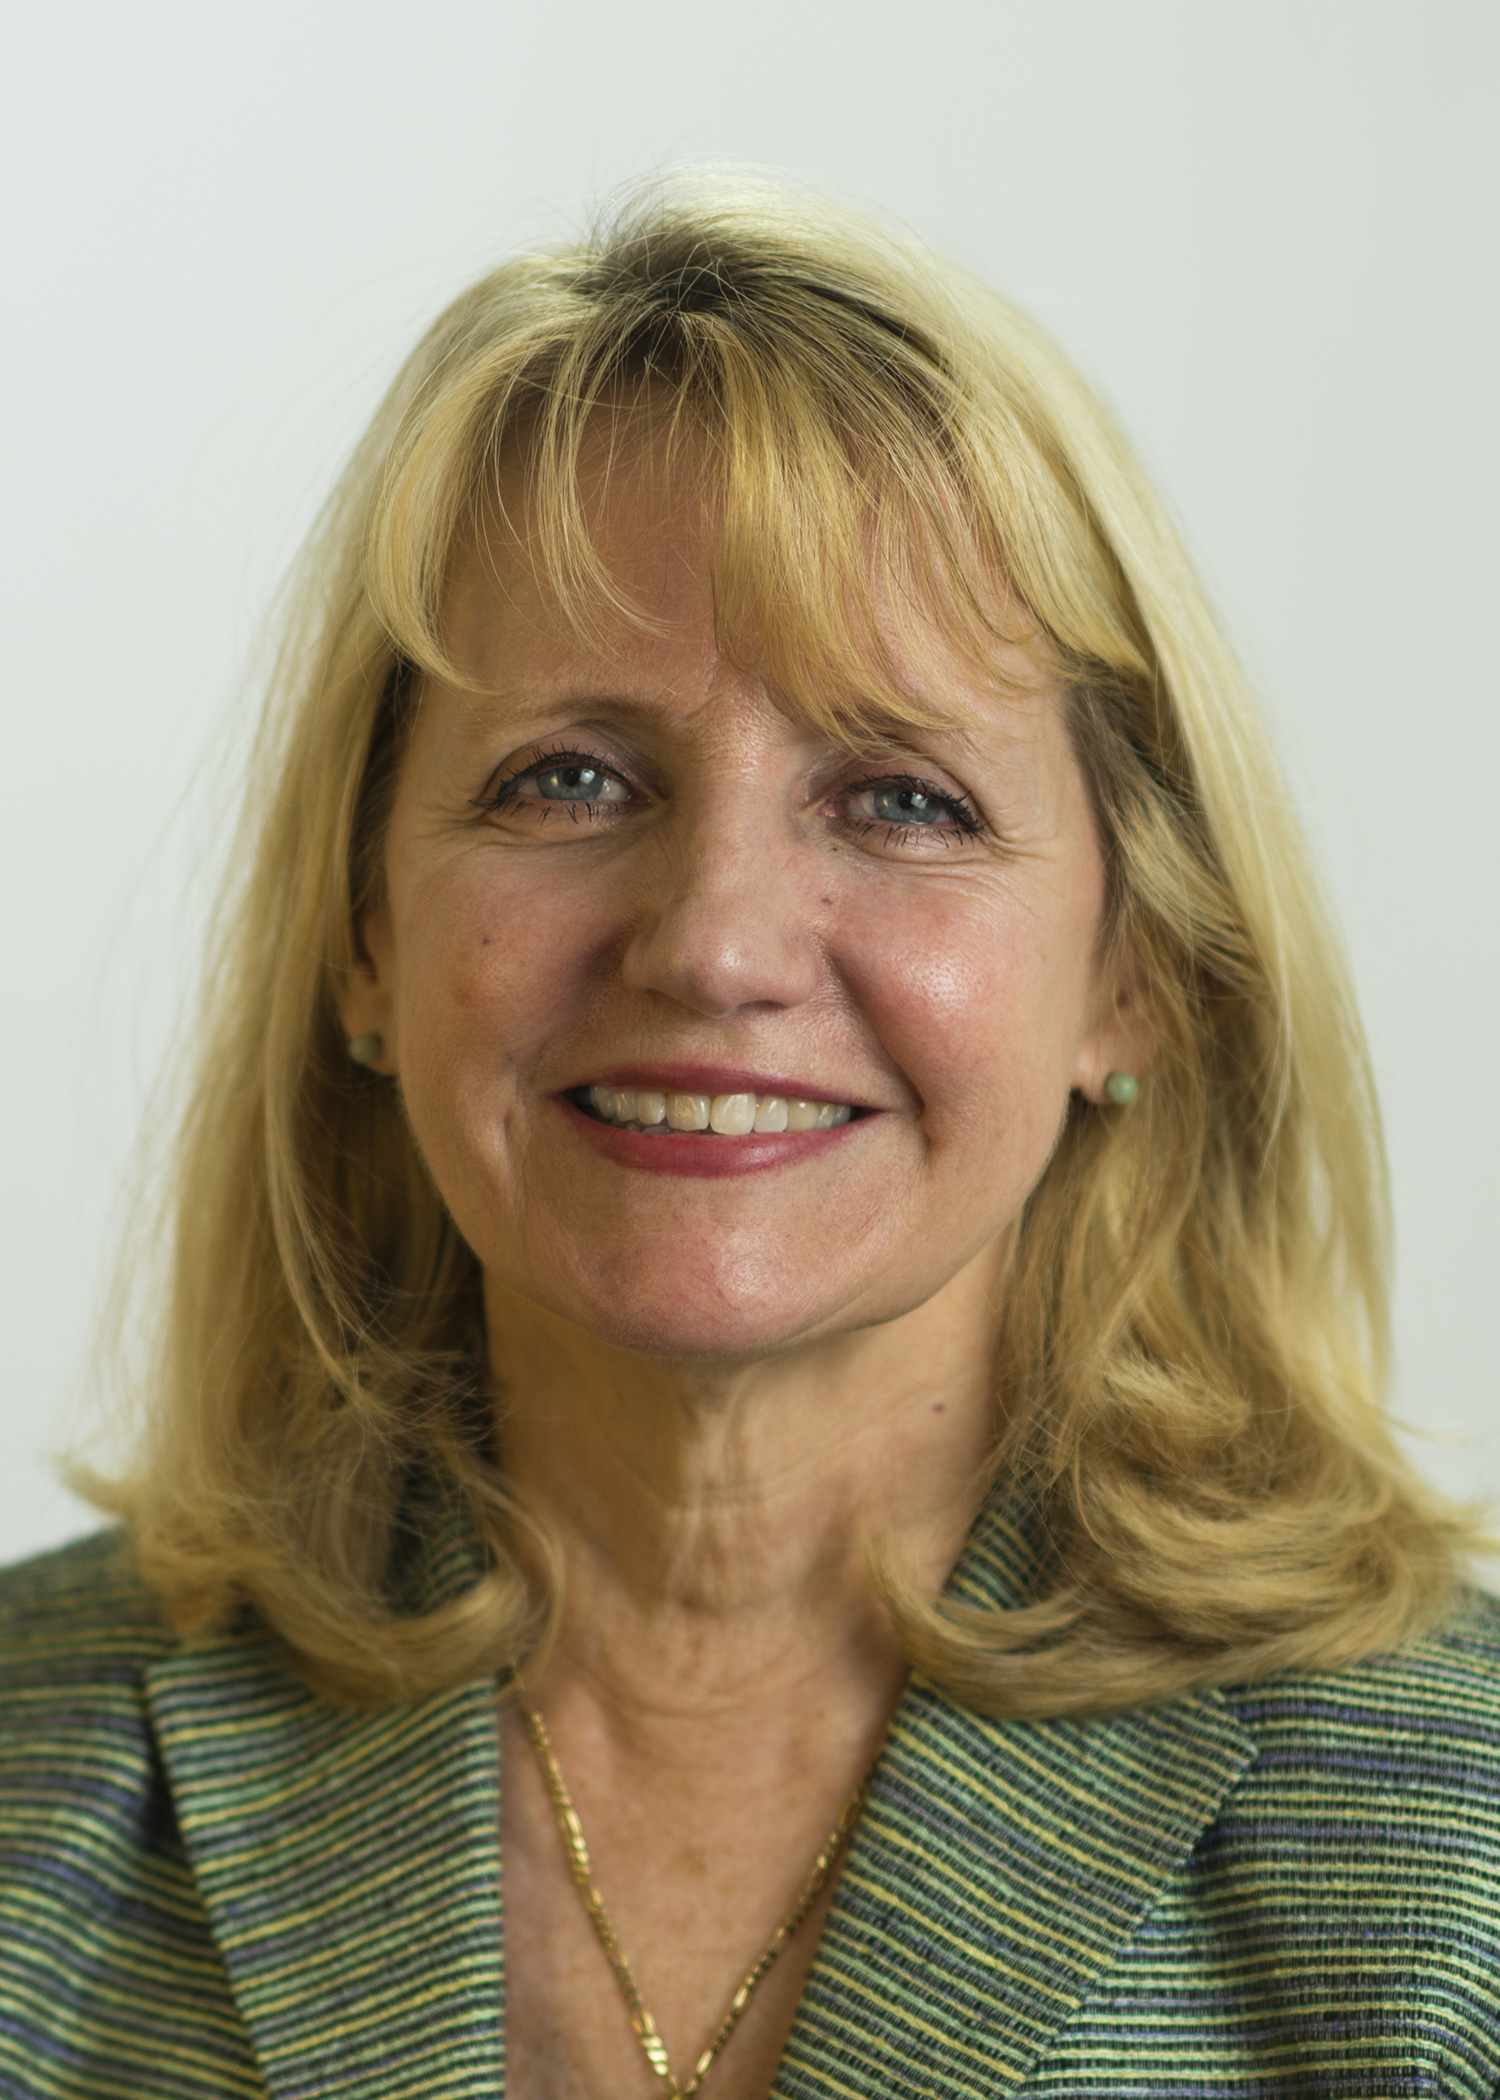 Profile image of Lis Handley